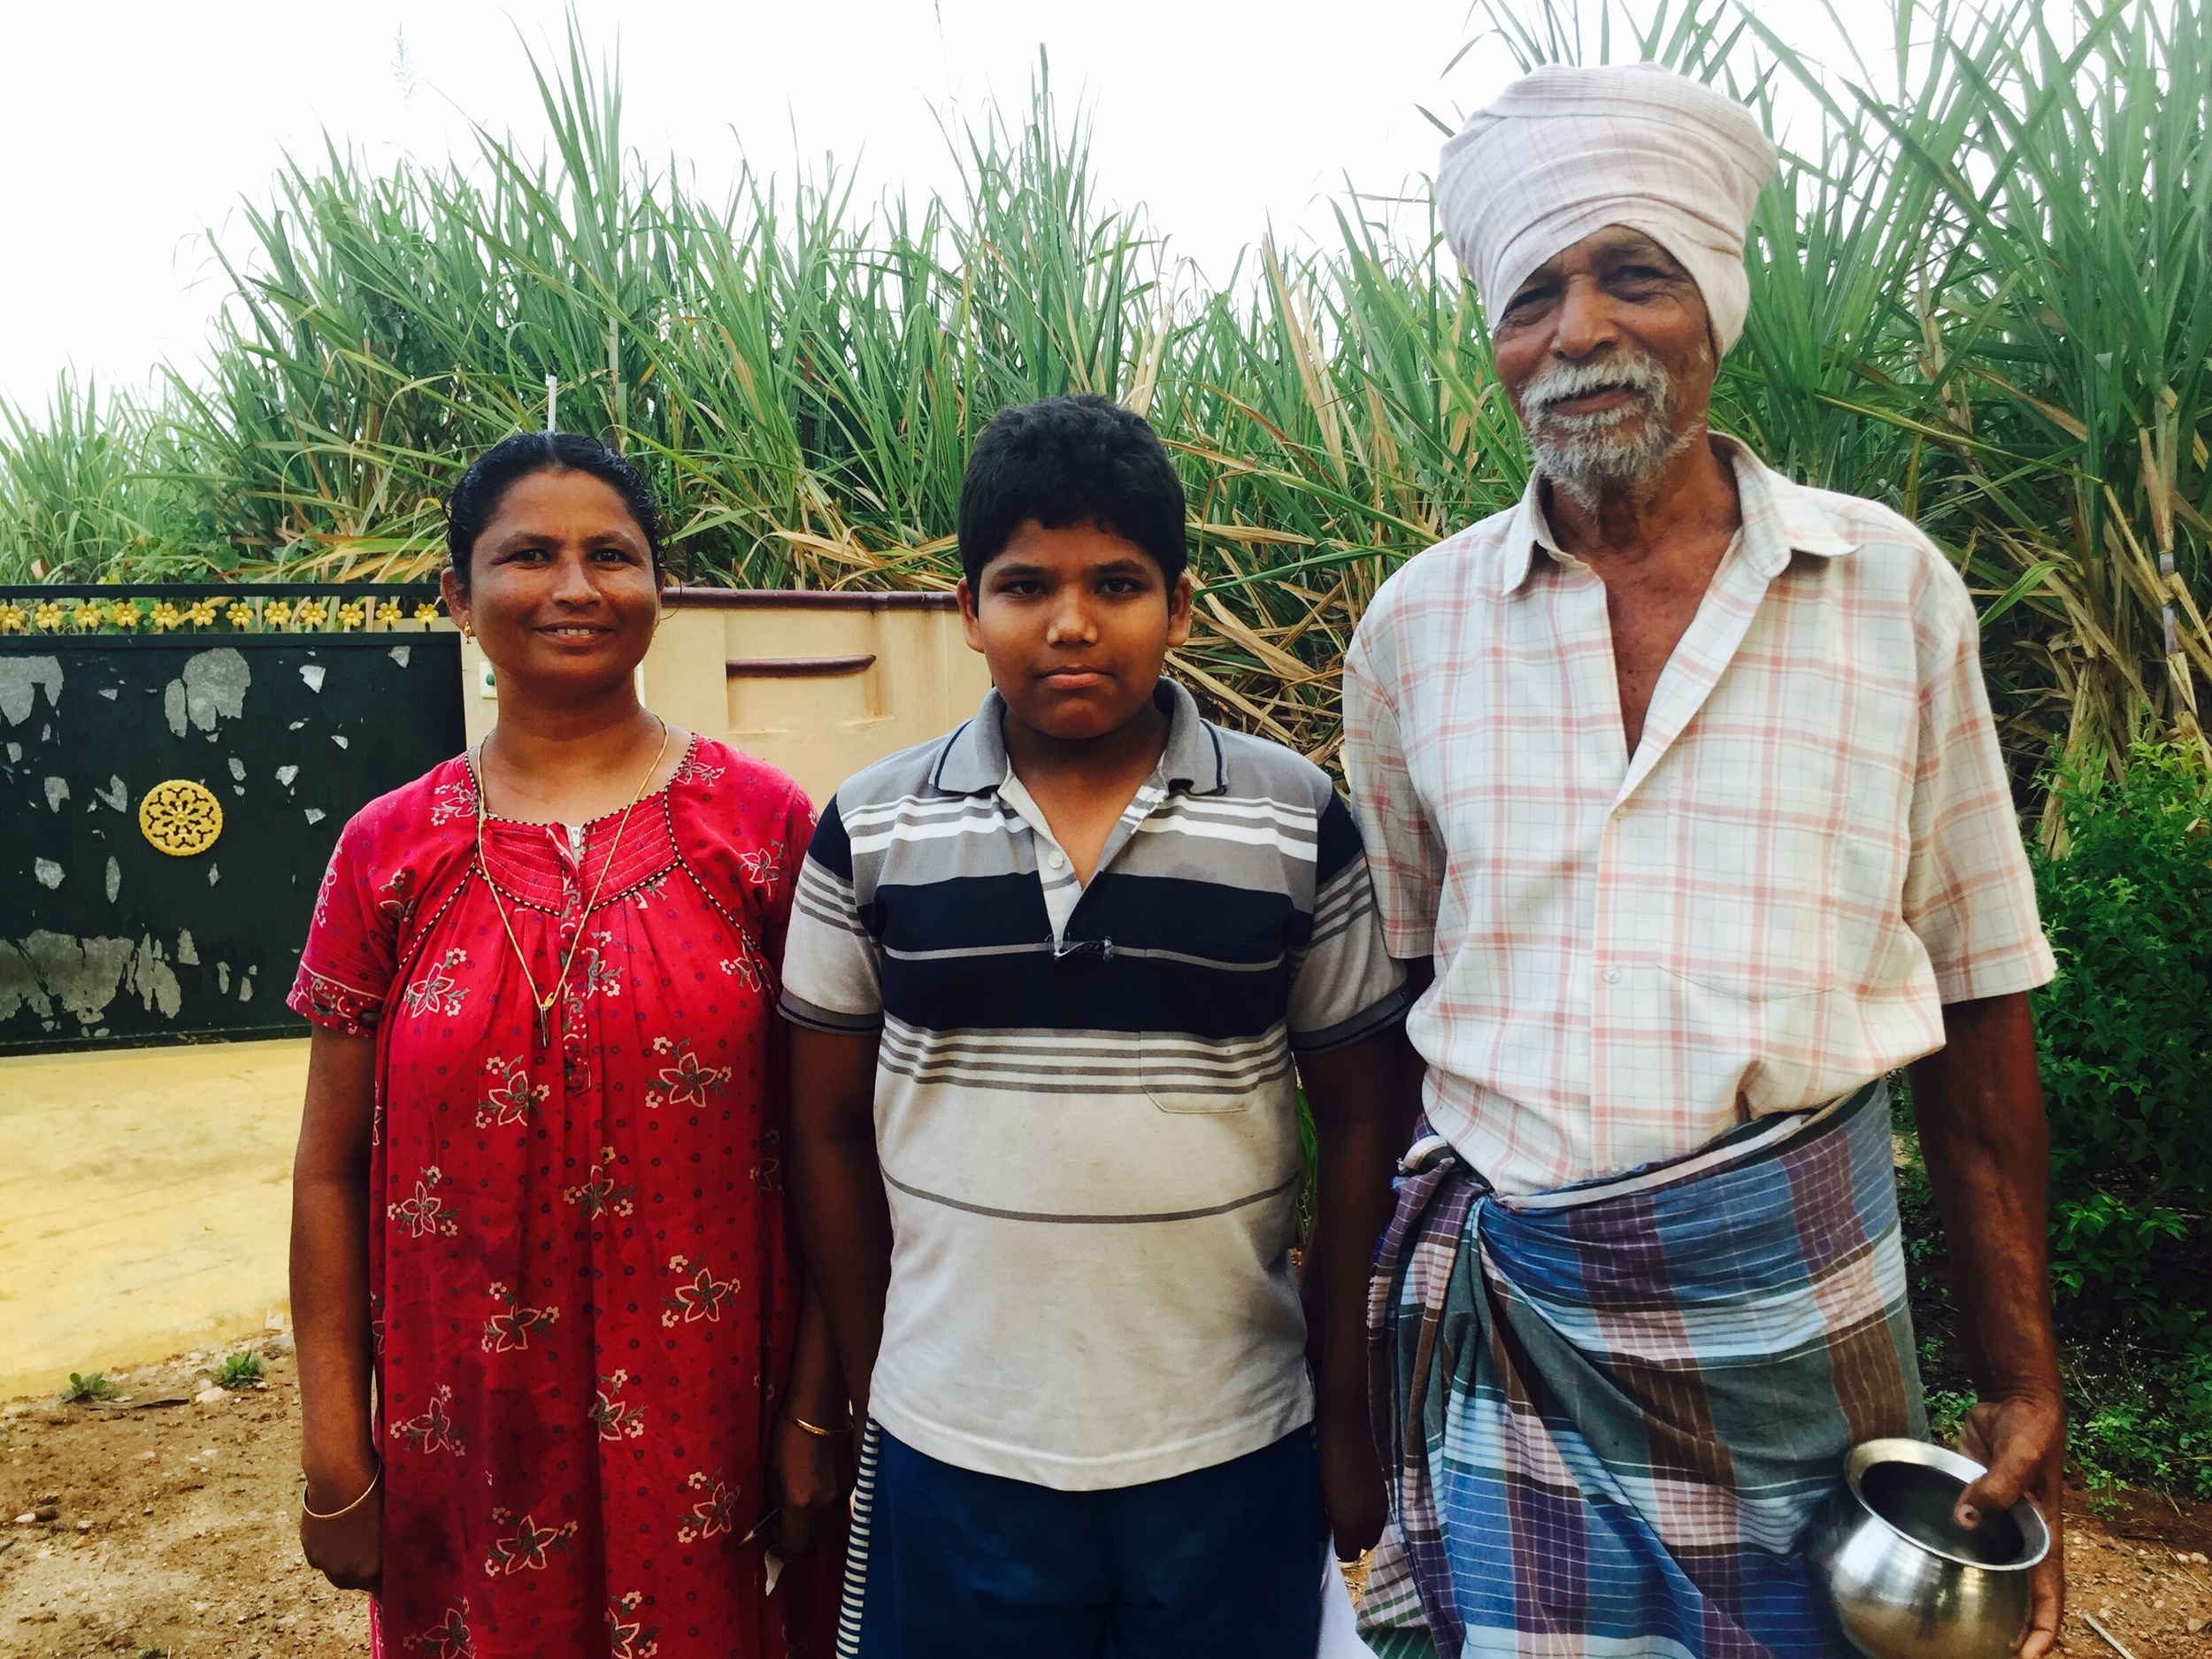 Nallasamy, his grandson and daughter-in-law. One last goodbye. Fuck I hate them.